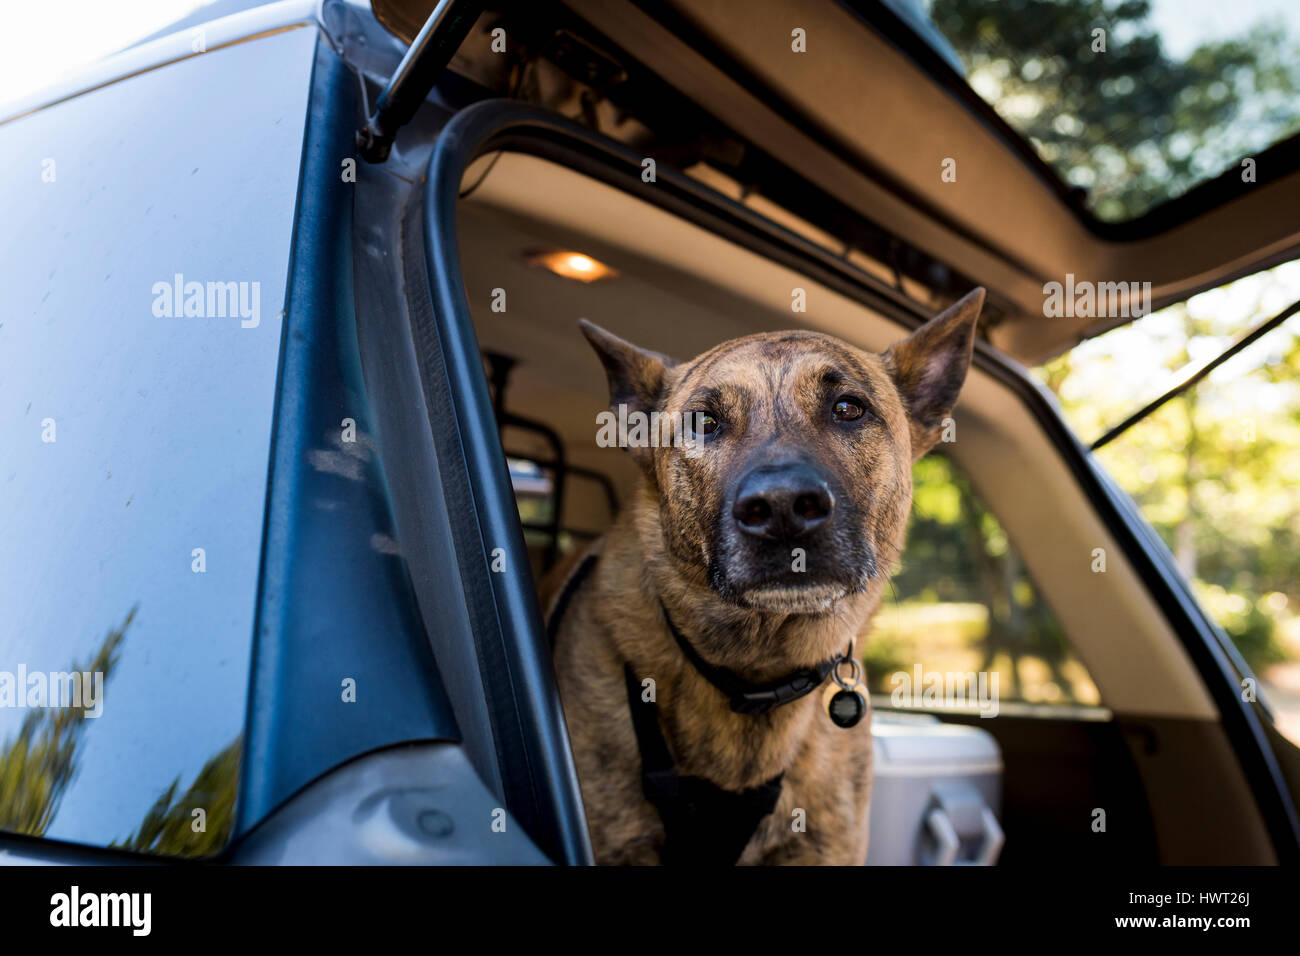 Portrait of dog in car trunk - Stock Image